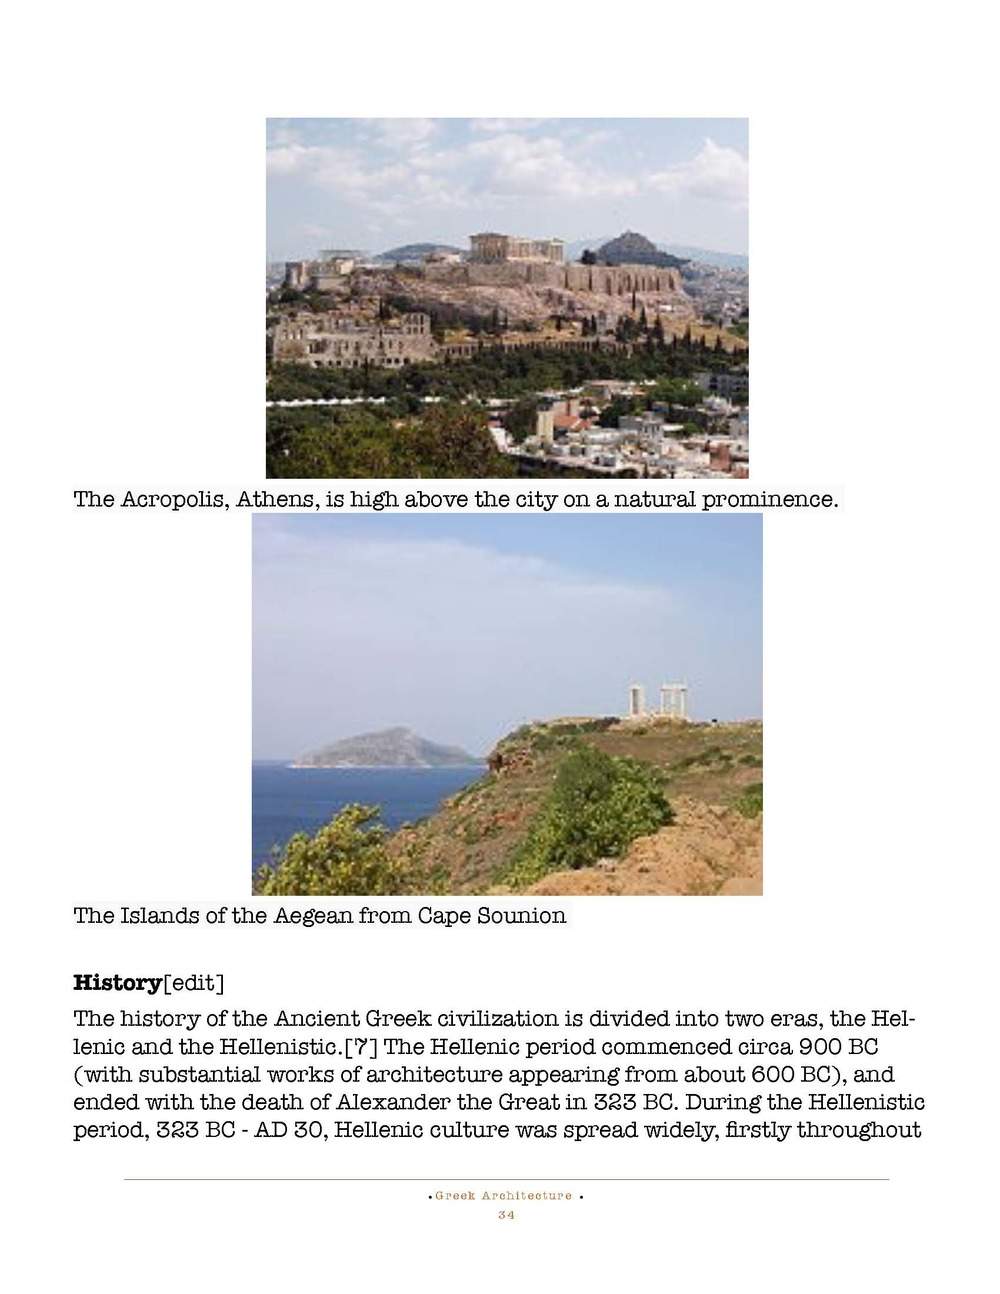 HOCE- Ancient Greece Notes_Page_034.jpg